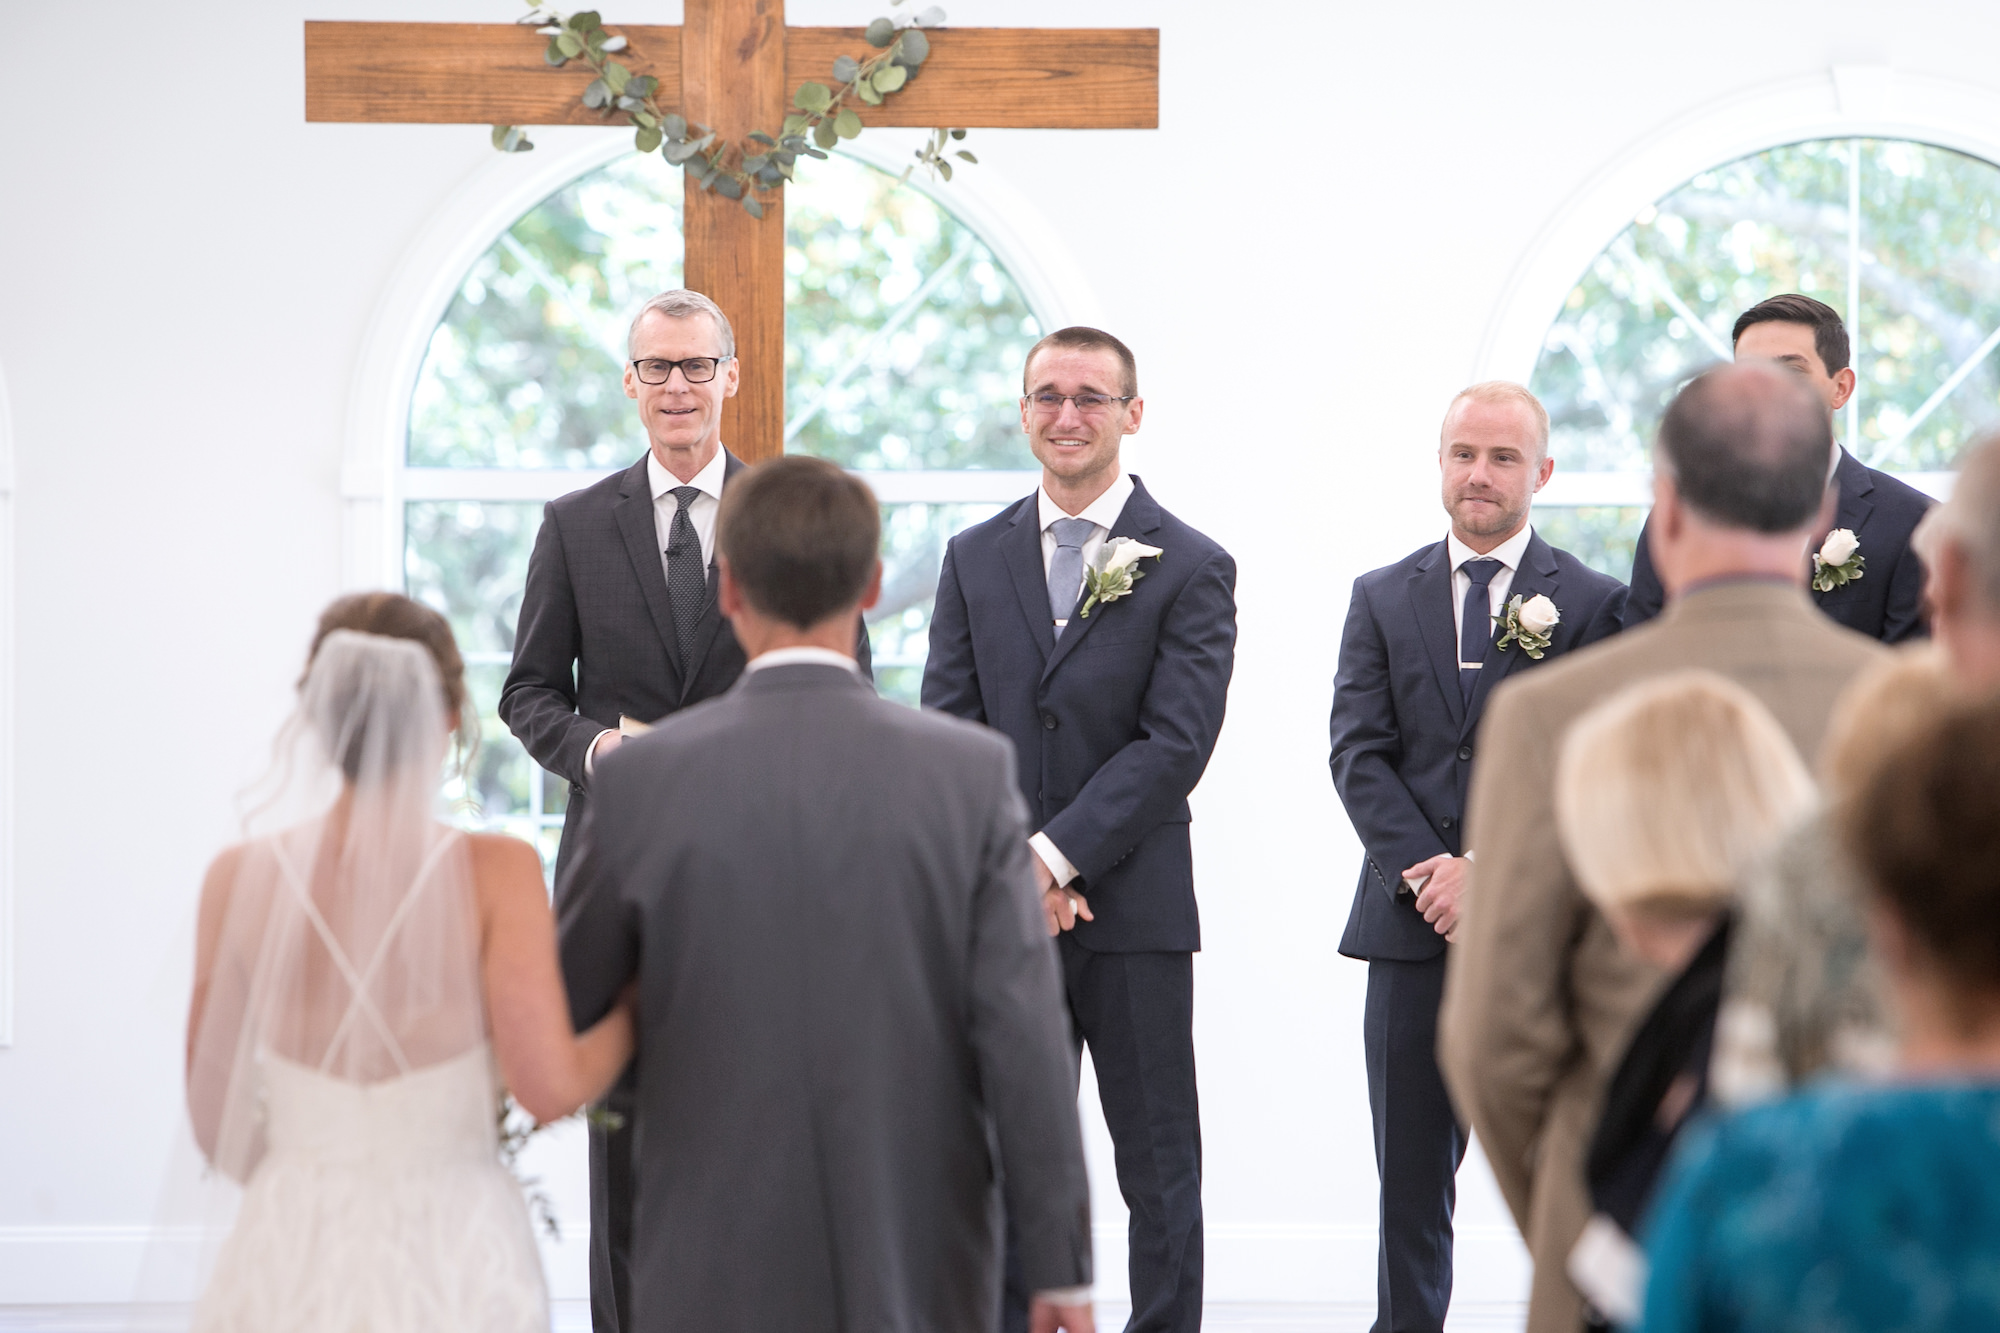 Bride and Groom Traditional Church Wedding Ceremony Processional Portrait   Tampa Bay Wedding Photographer Carrie Wildes Photography   Wedding Venue Harborside Chapel